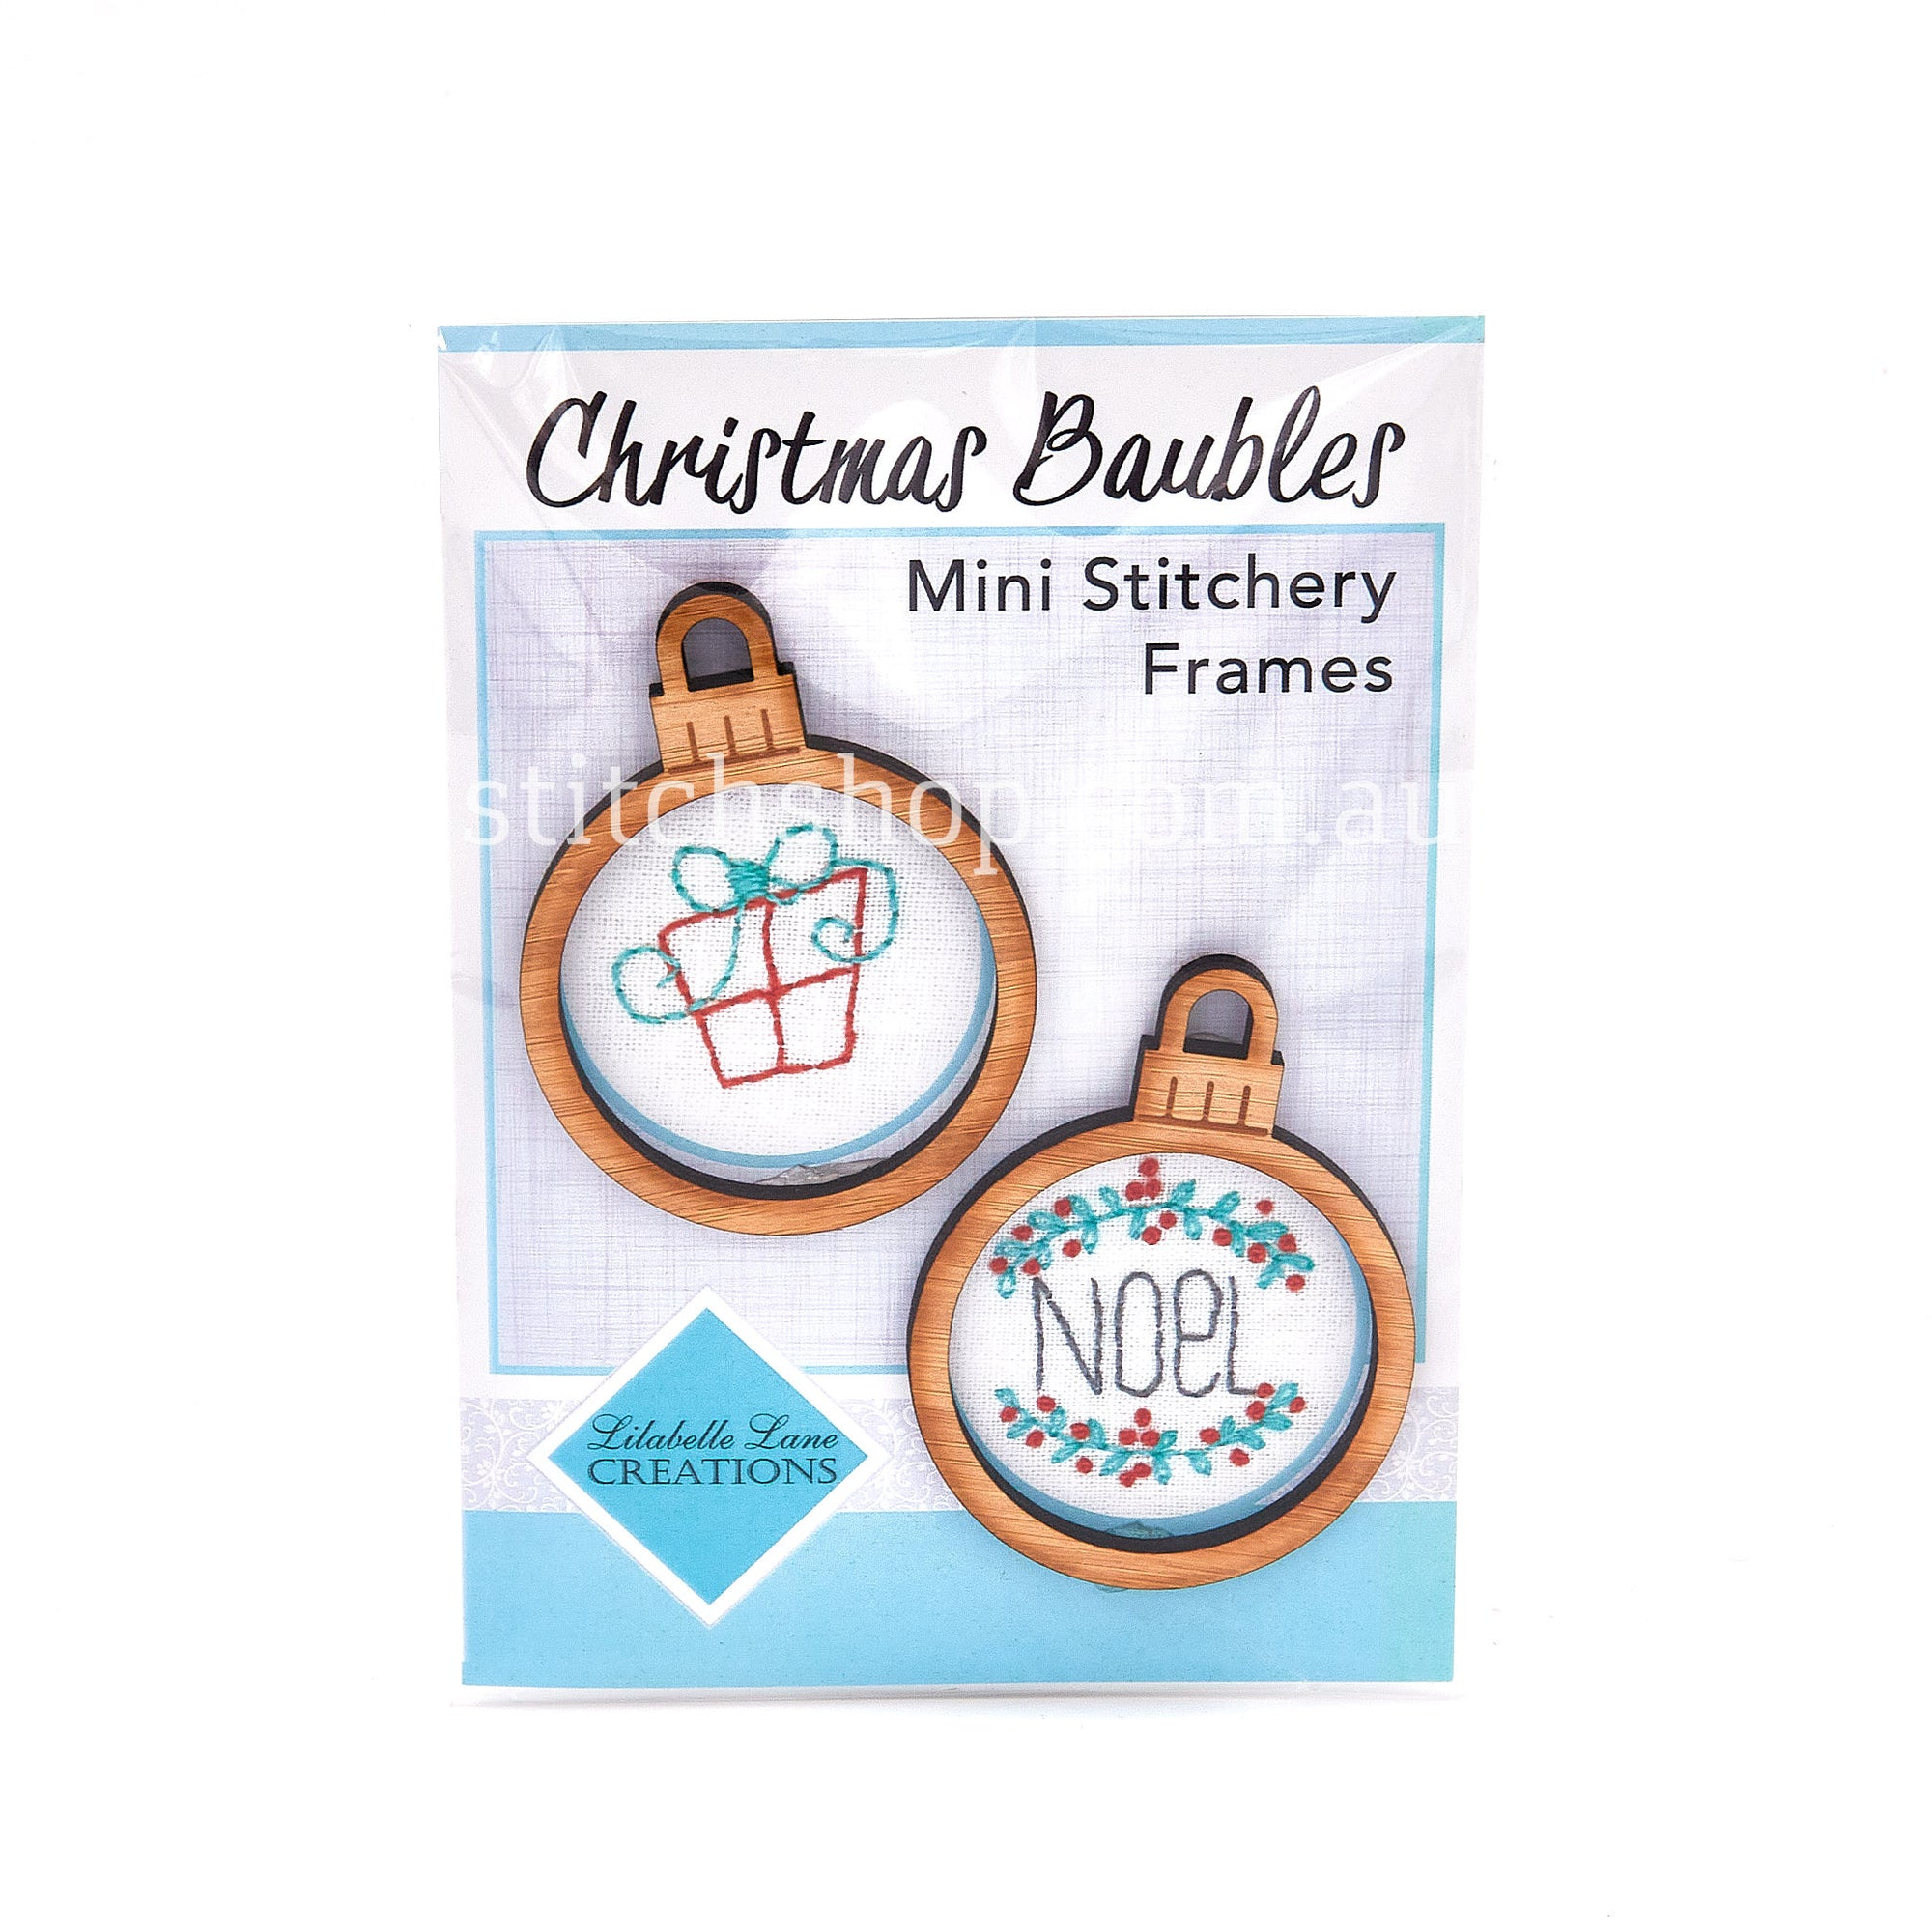 Christmas Baubles Mini Stitchery Frames - Default Title (0728238873165)